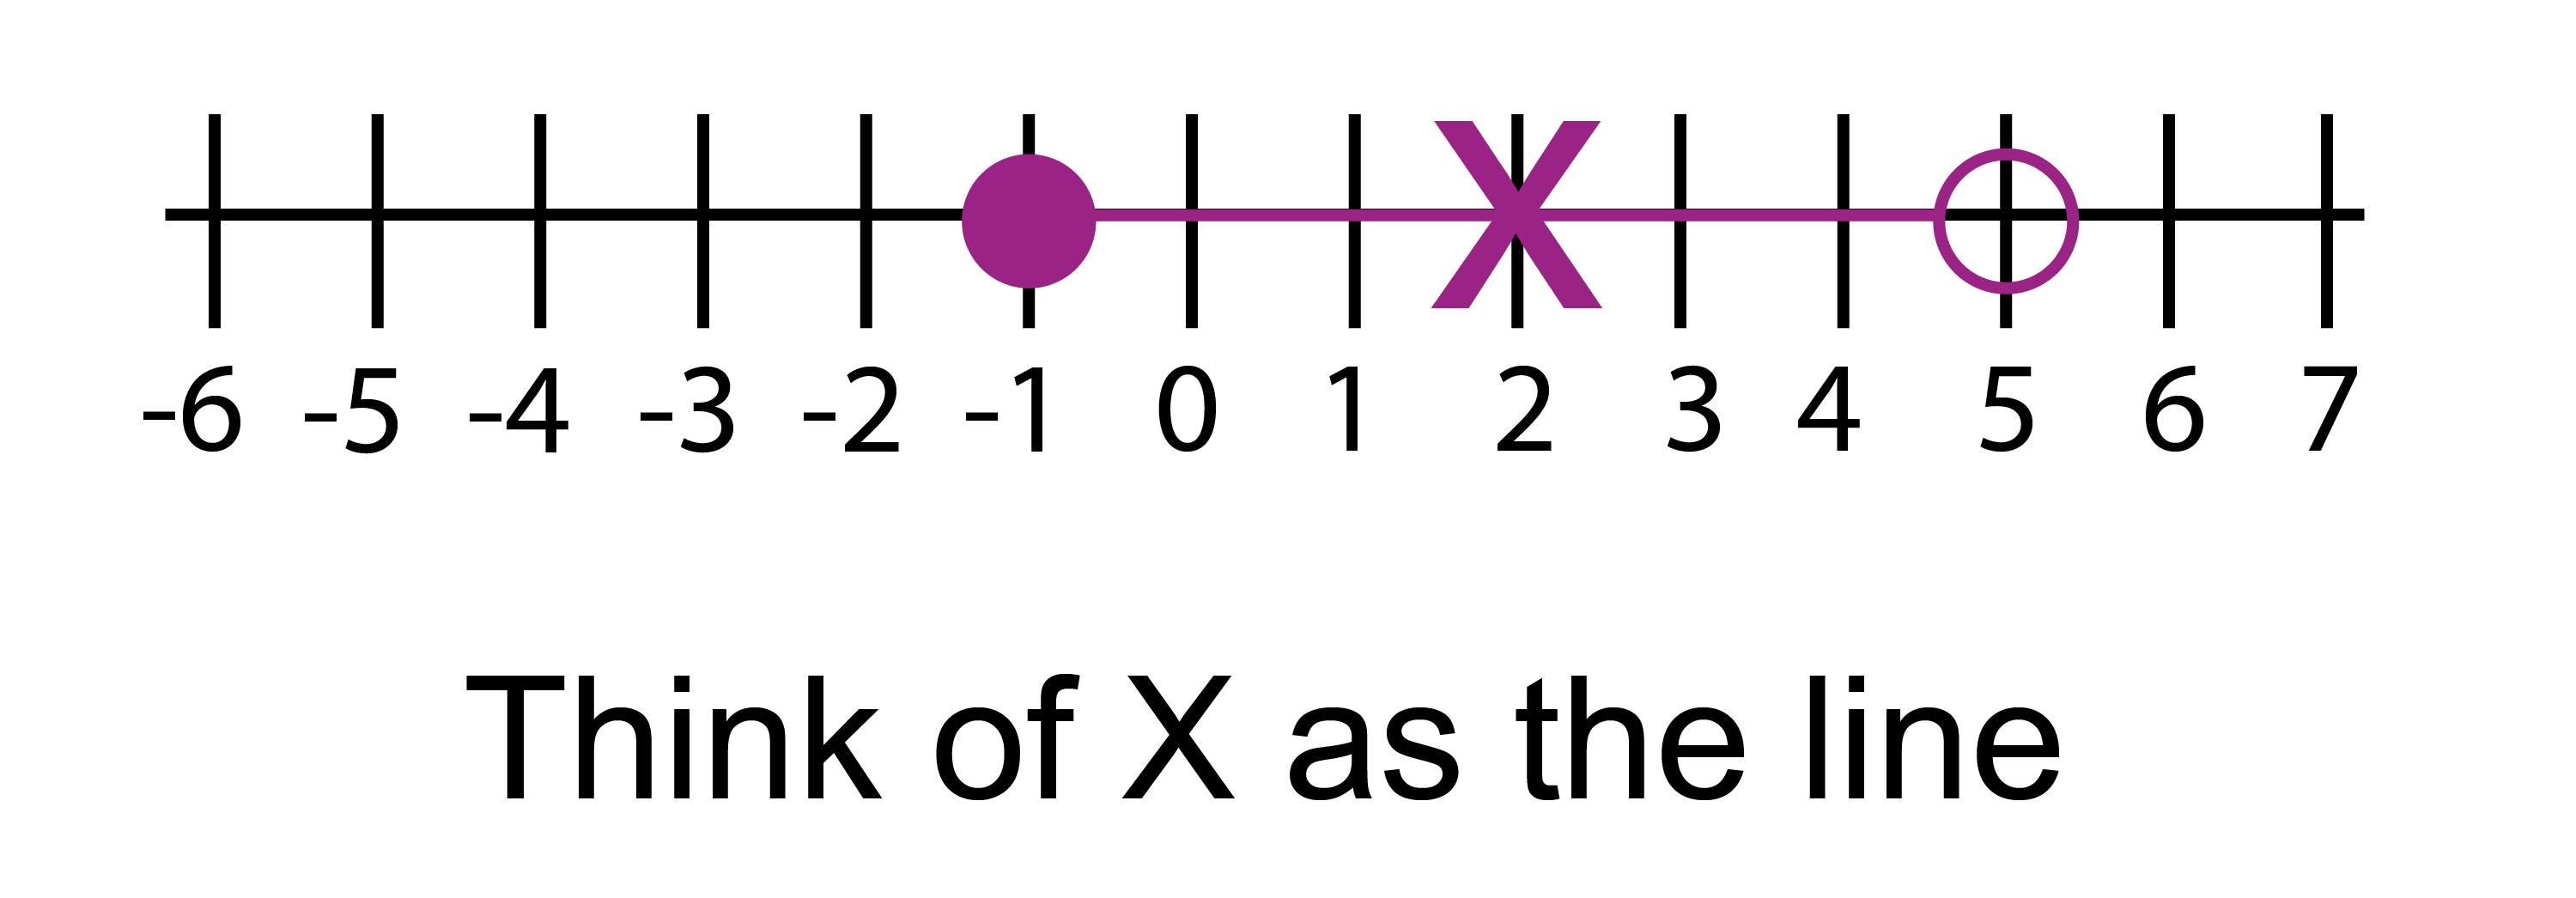 Joining the arrows of a three-part inequality up on a number line produces an X think of the X as the line